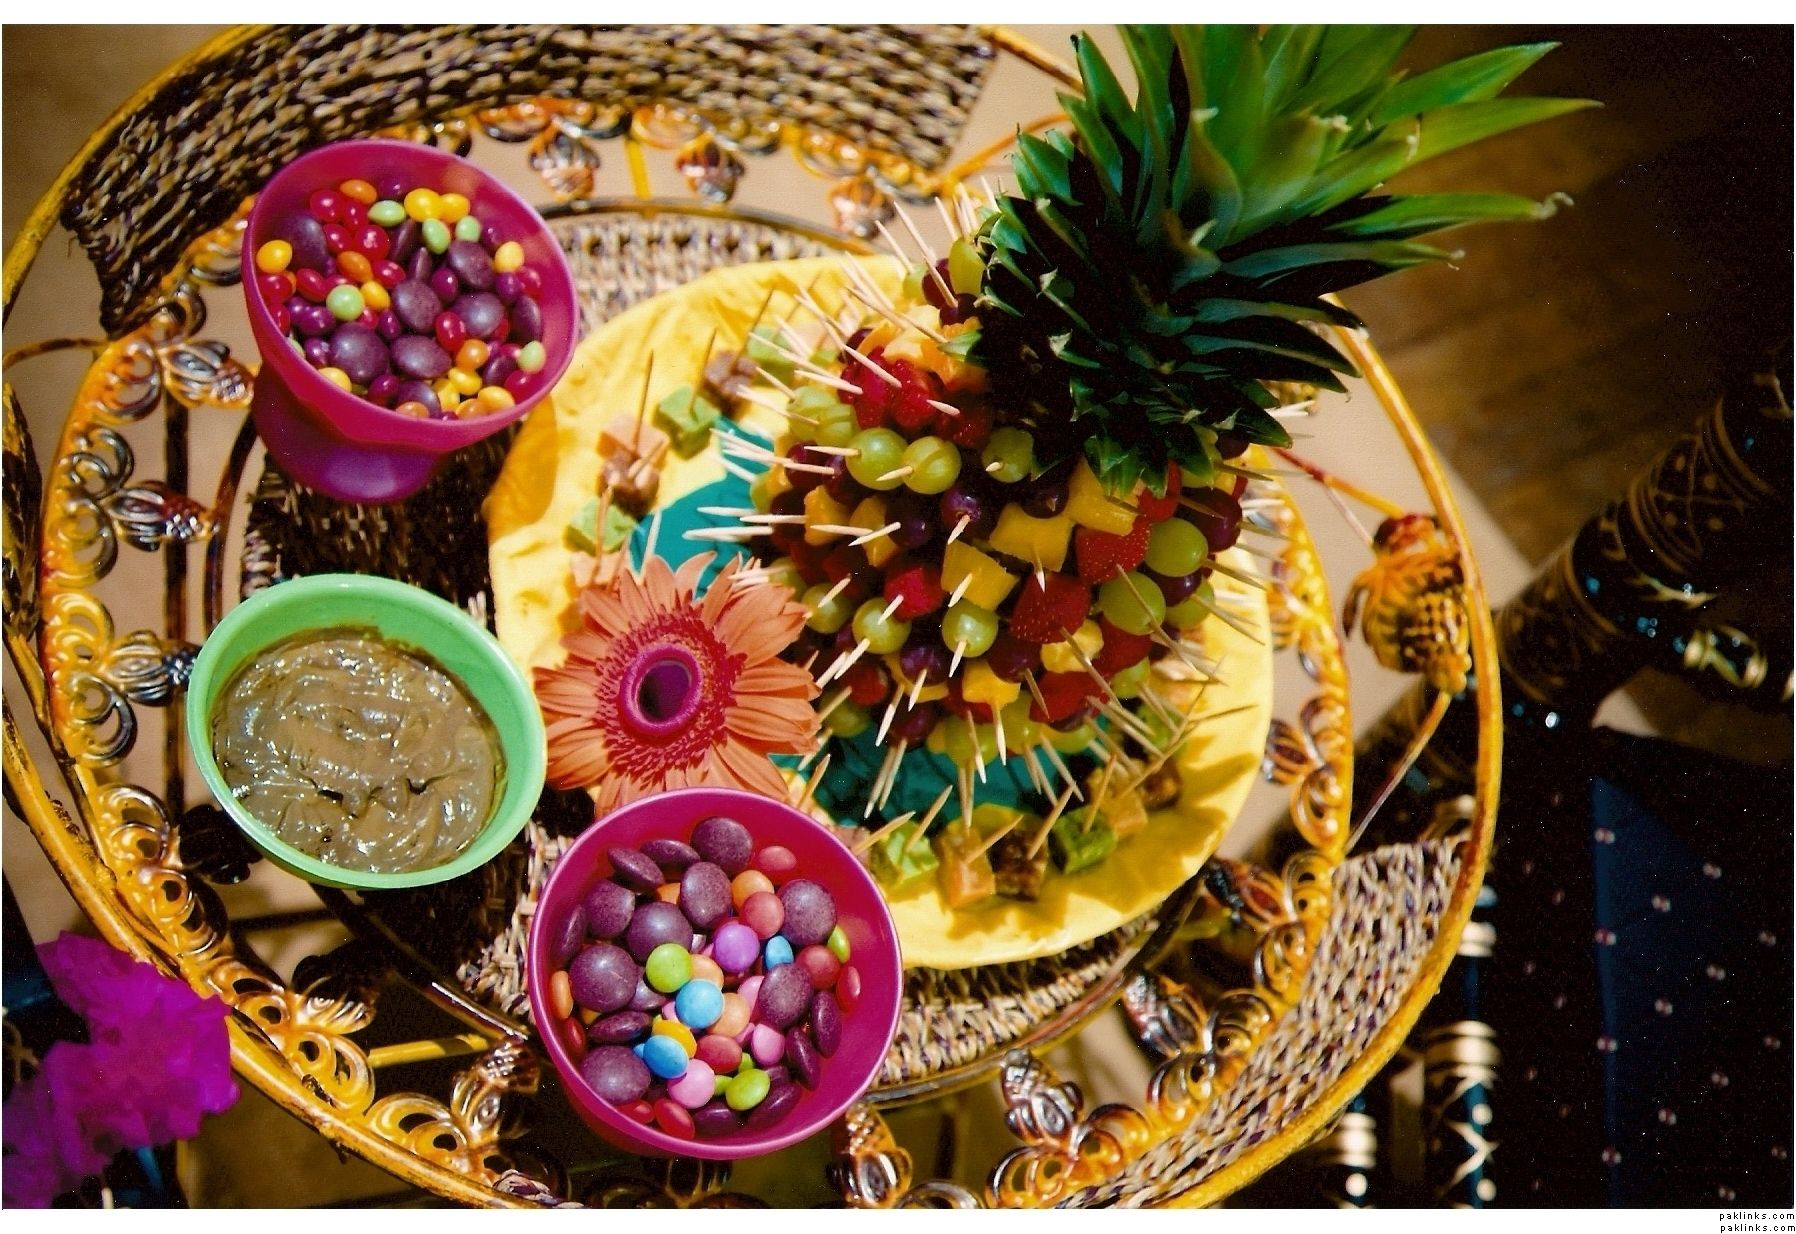 Mehndi Fruit Decoration : Wouldn t put mehndi and candy together but bring